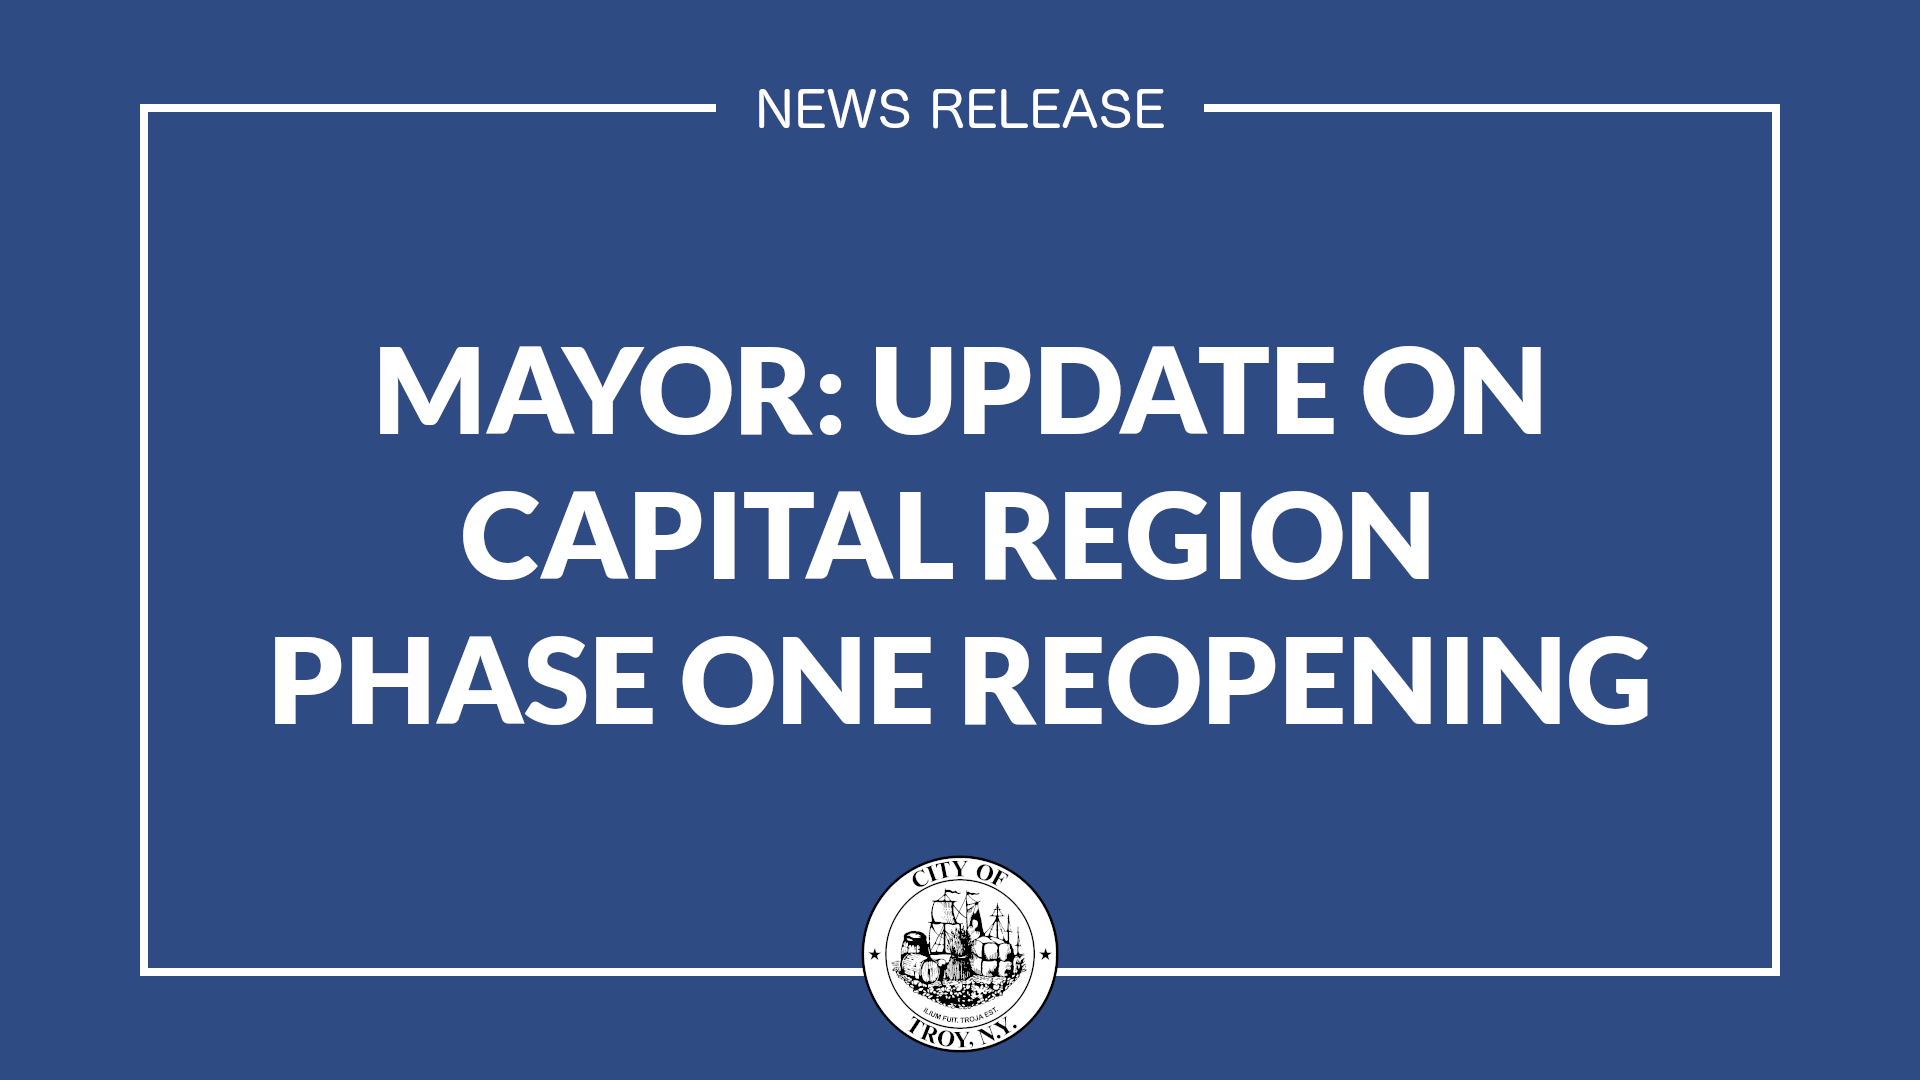 White text against a dark blue background that reads Mayor: Update on Capital Region Phase One Reopening